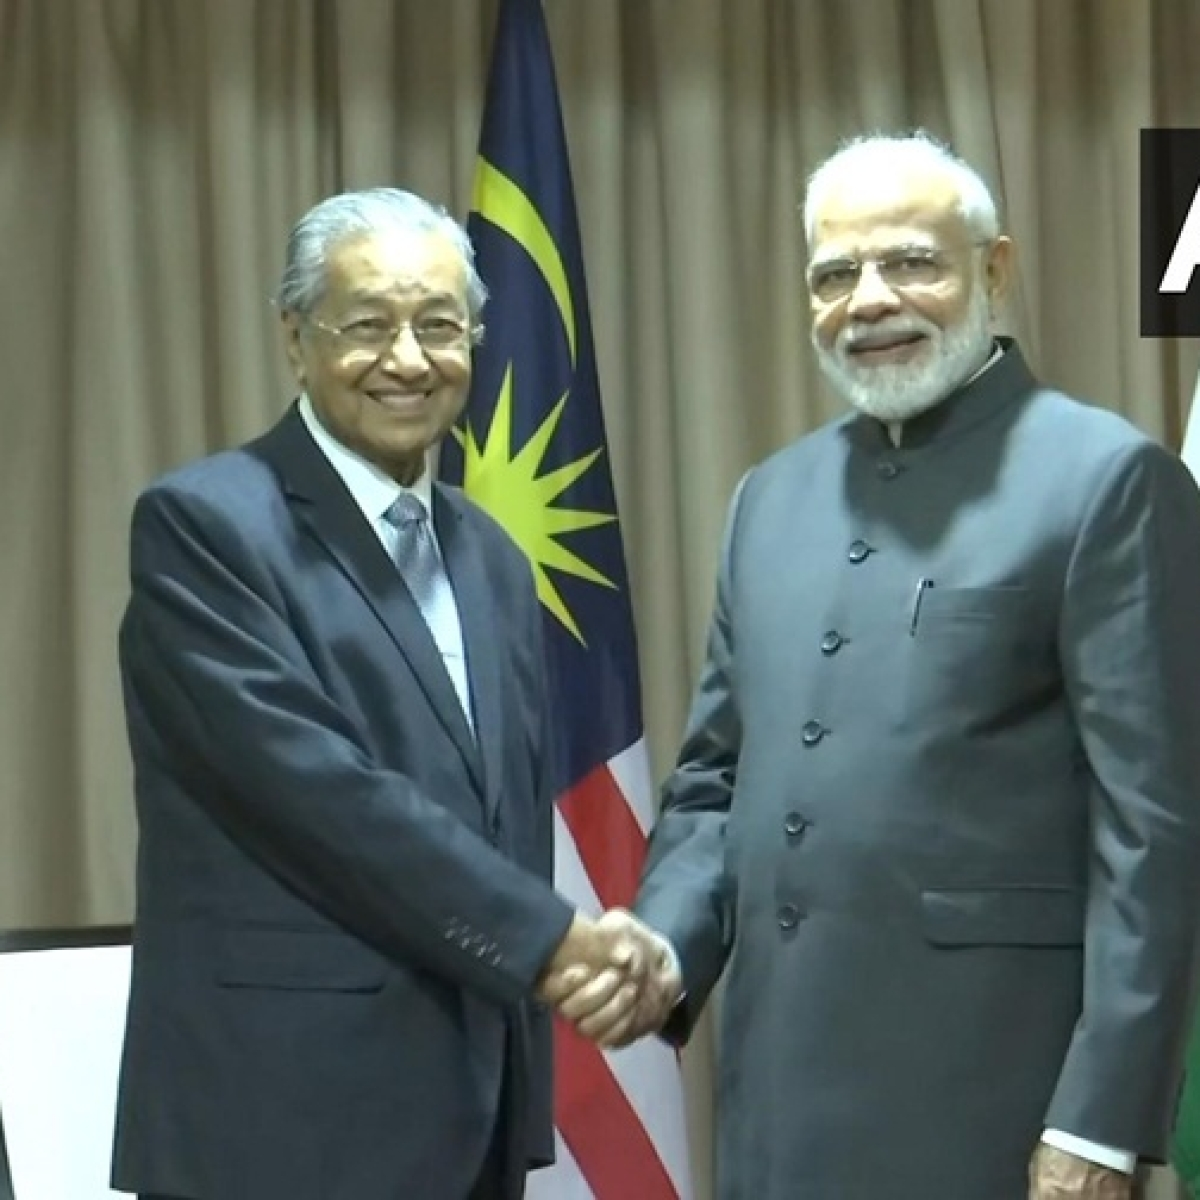 PM Narendra Modi takes up Zakir Naik issue with Malaysian PM Mahathir Mohamed